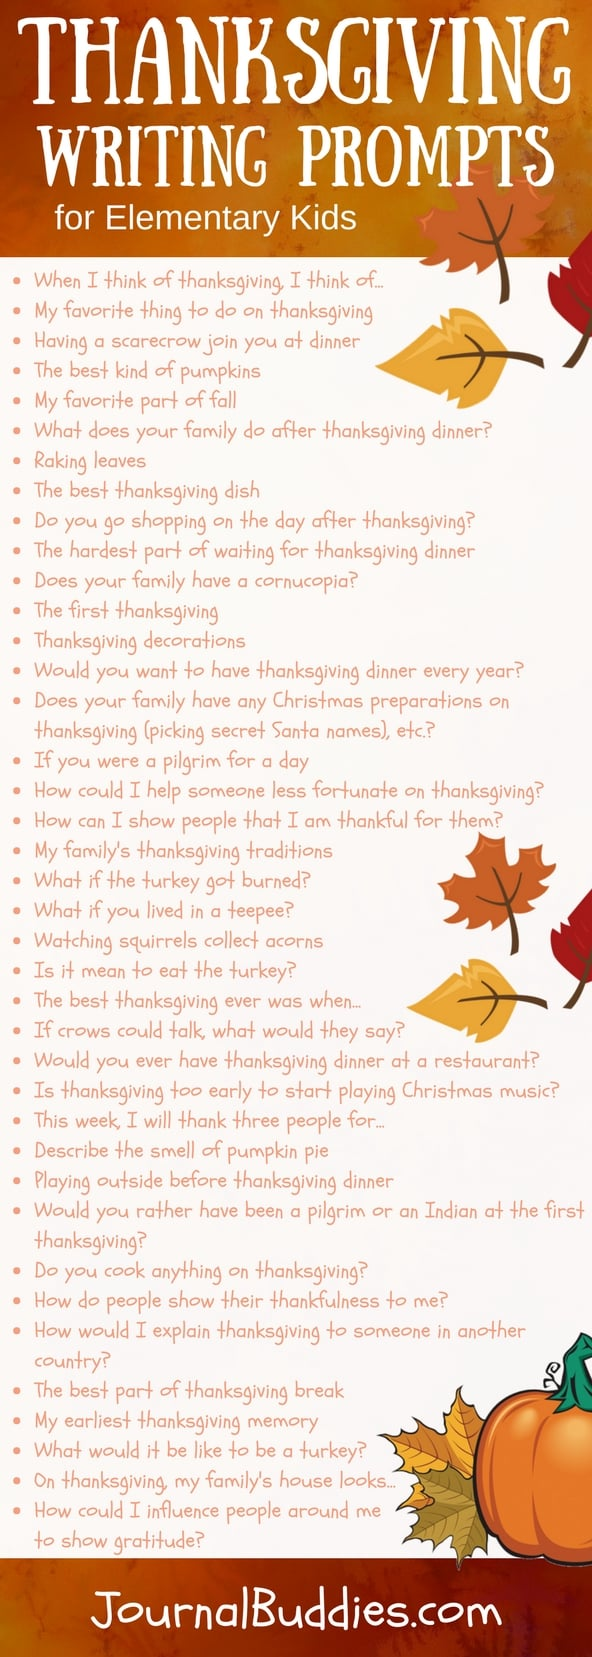 Look at these 78 writing ideas for Elementary students! Treat your kids to these fun Thanksgiving writing ideas and encourage them to get extra creative with these exciting writing starters!